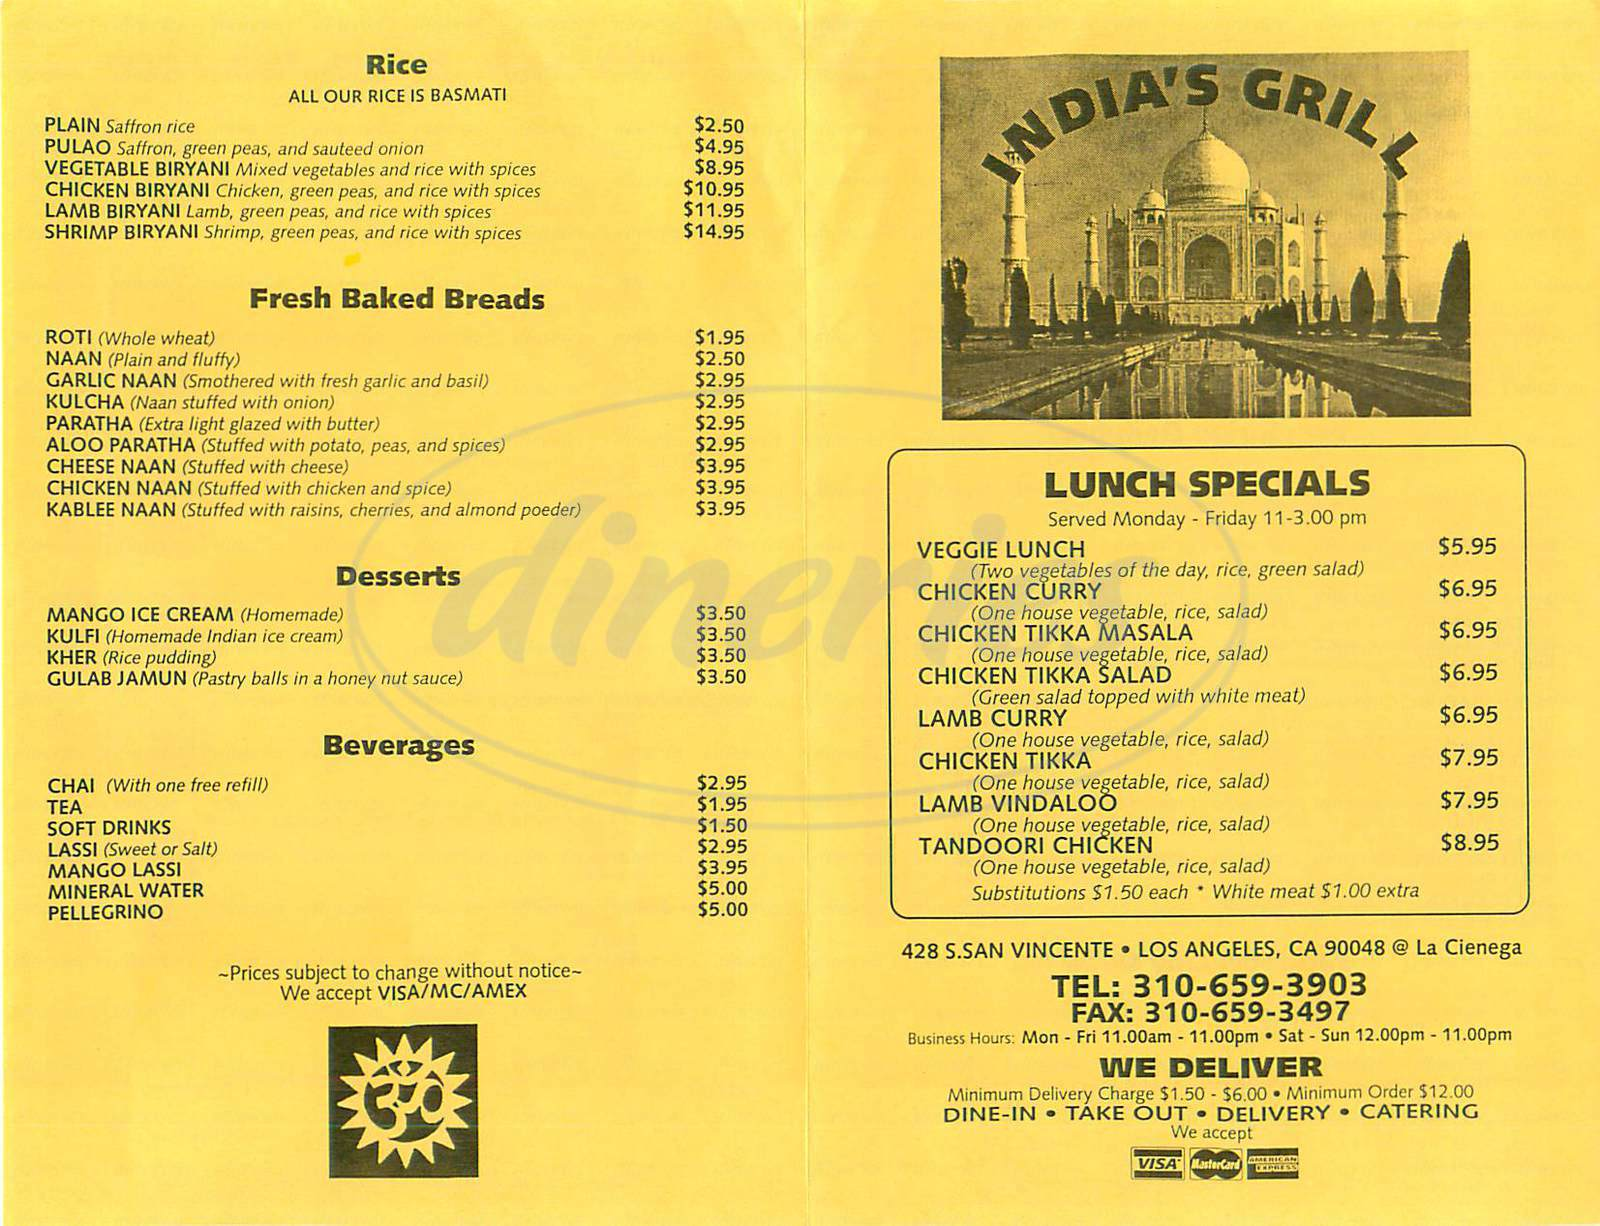 menu for India's Grill